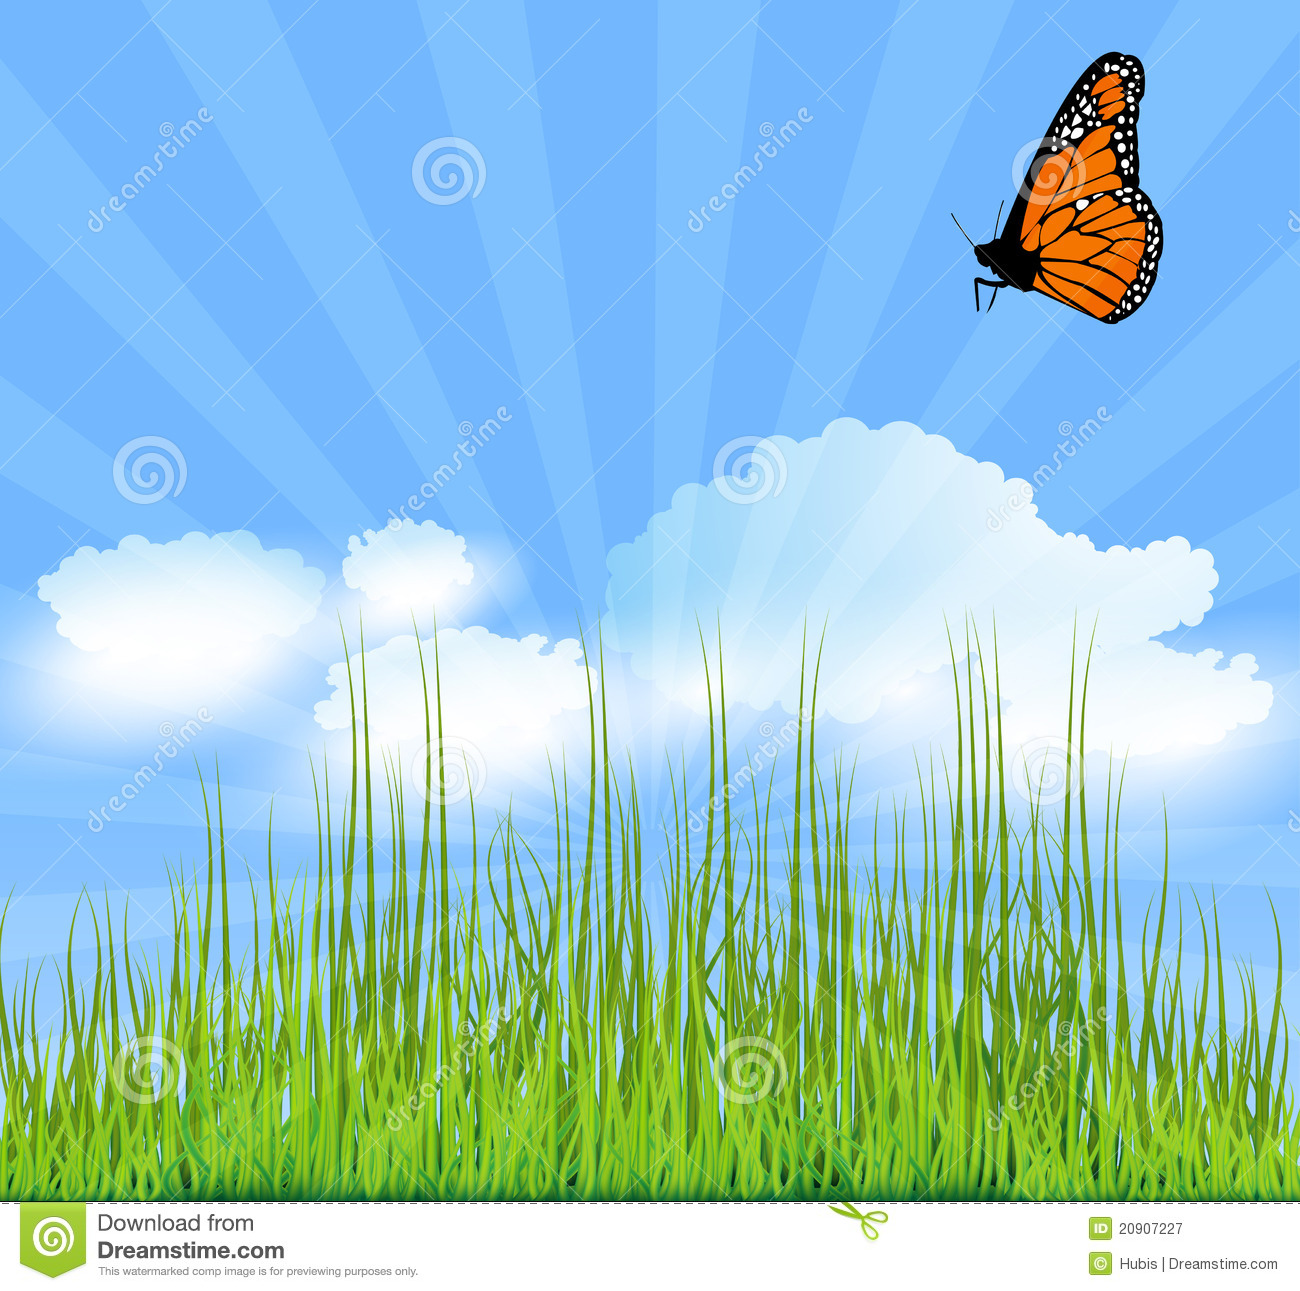 Nature Background Poster Royalty Free Stock Photography - Image ...